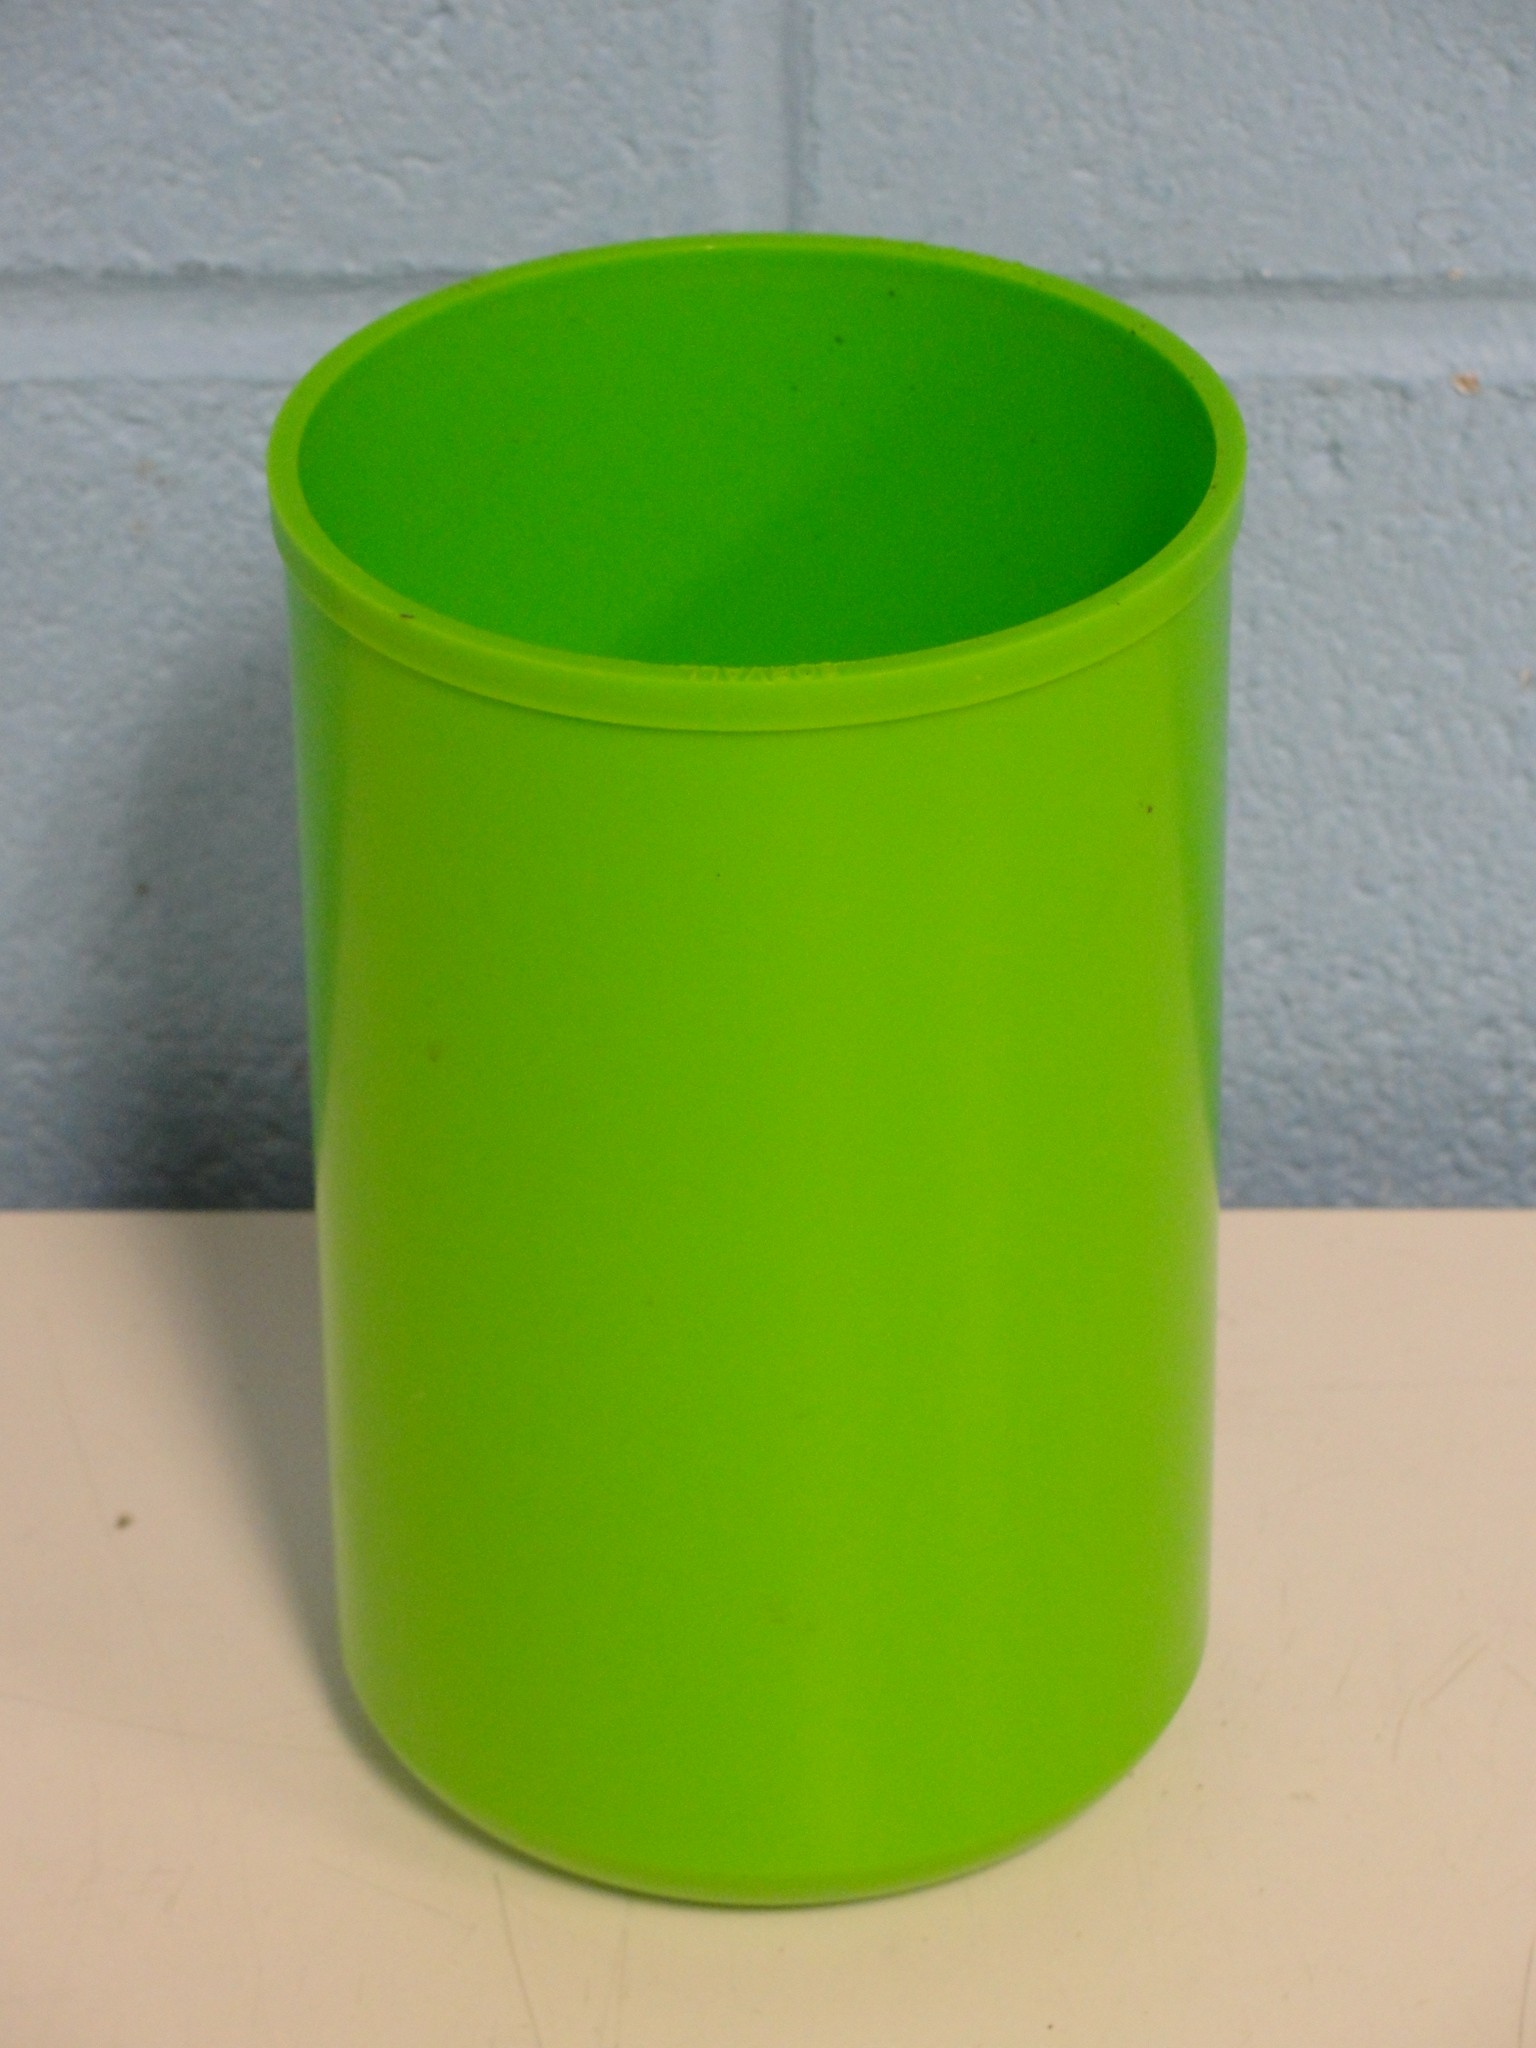 Sorvall Bucket Adapter Image